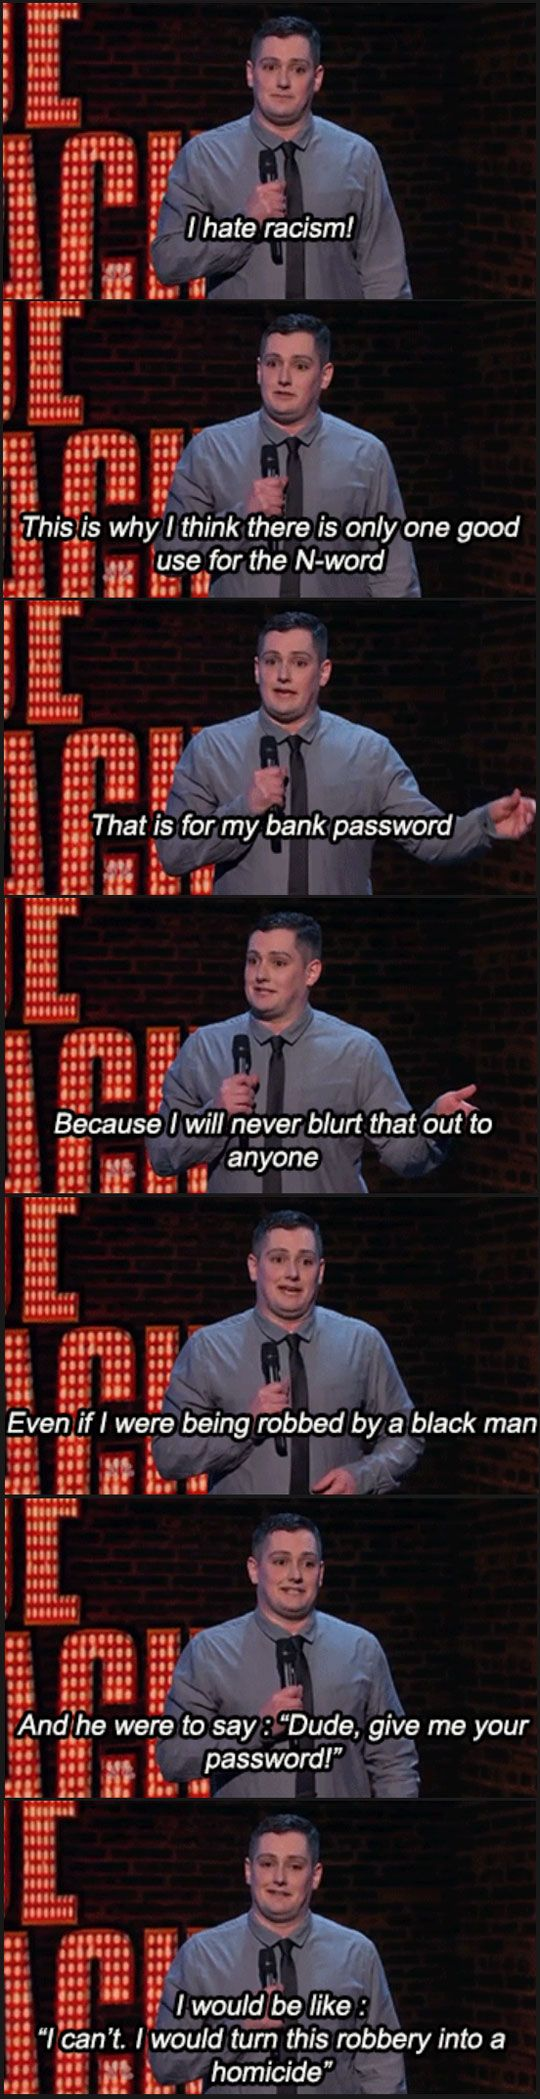 The Best ATM Password. I remember watching this on Last Comic Standing. I thought he was great!! :)  Jokes on racism